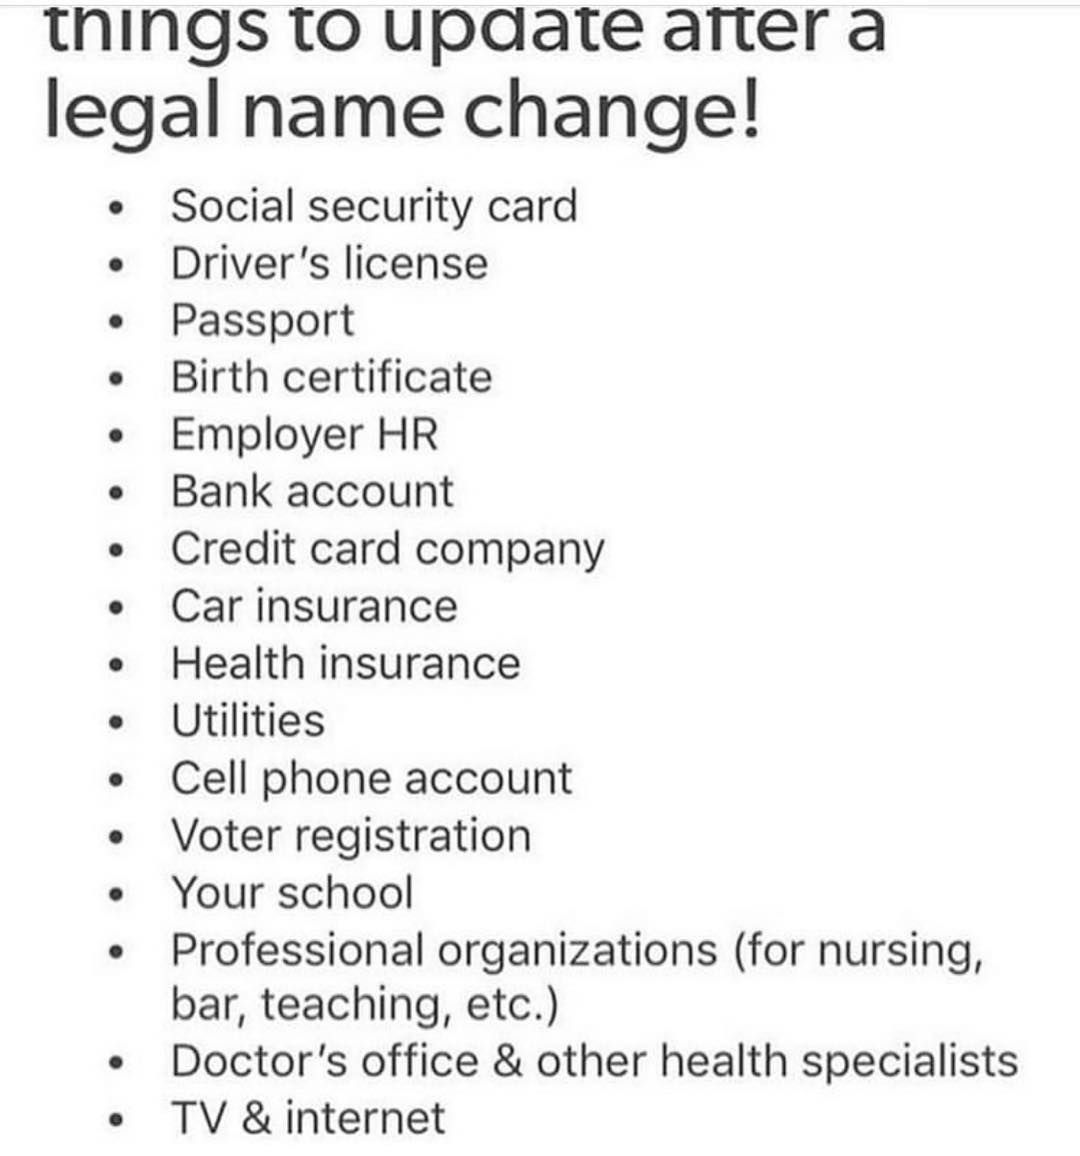 Textpostfeminist On Instagram Helpful Legal Name Change